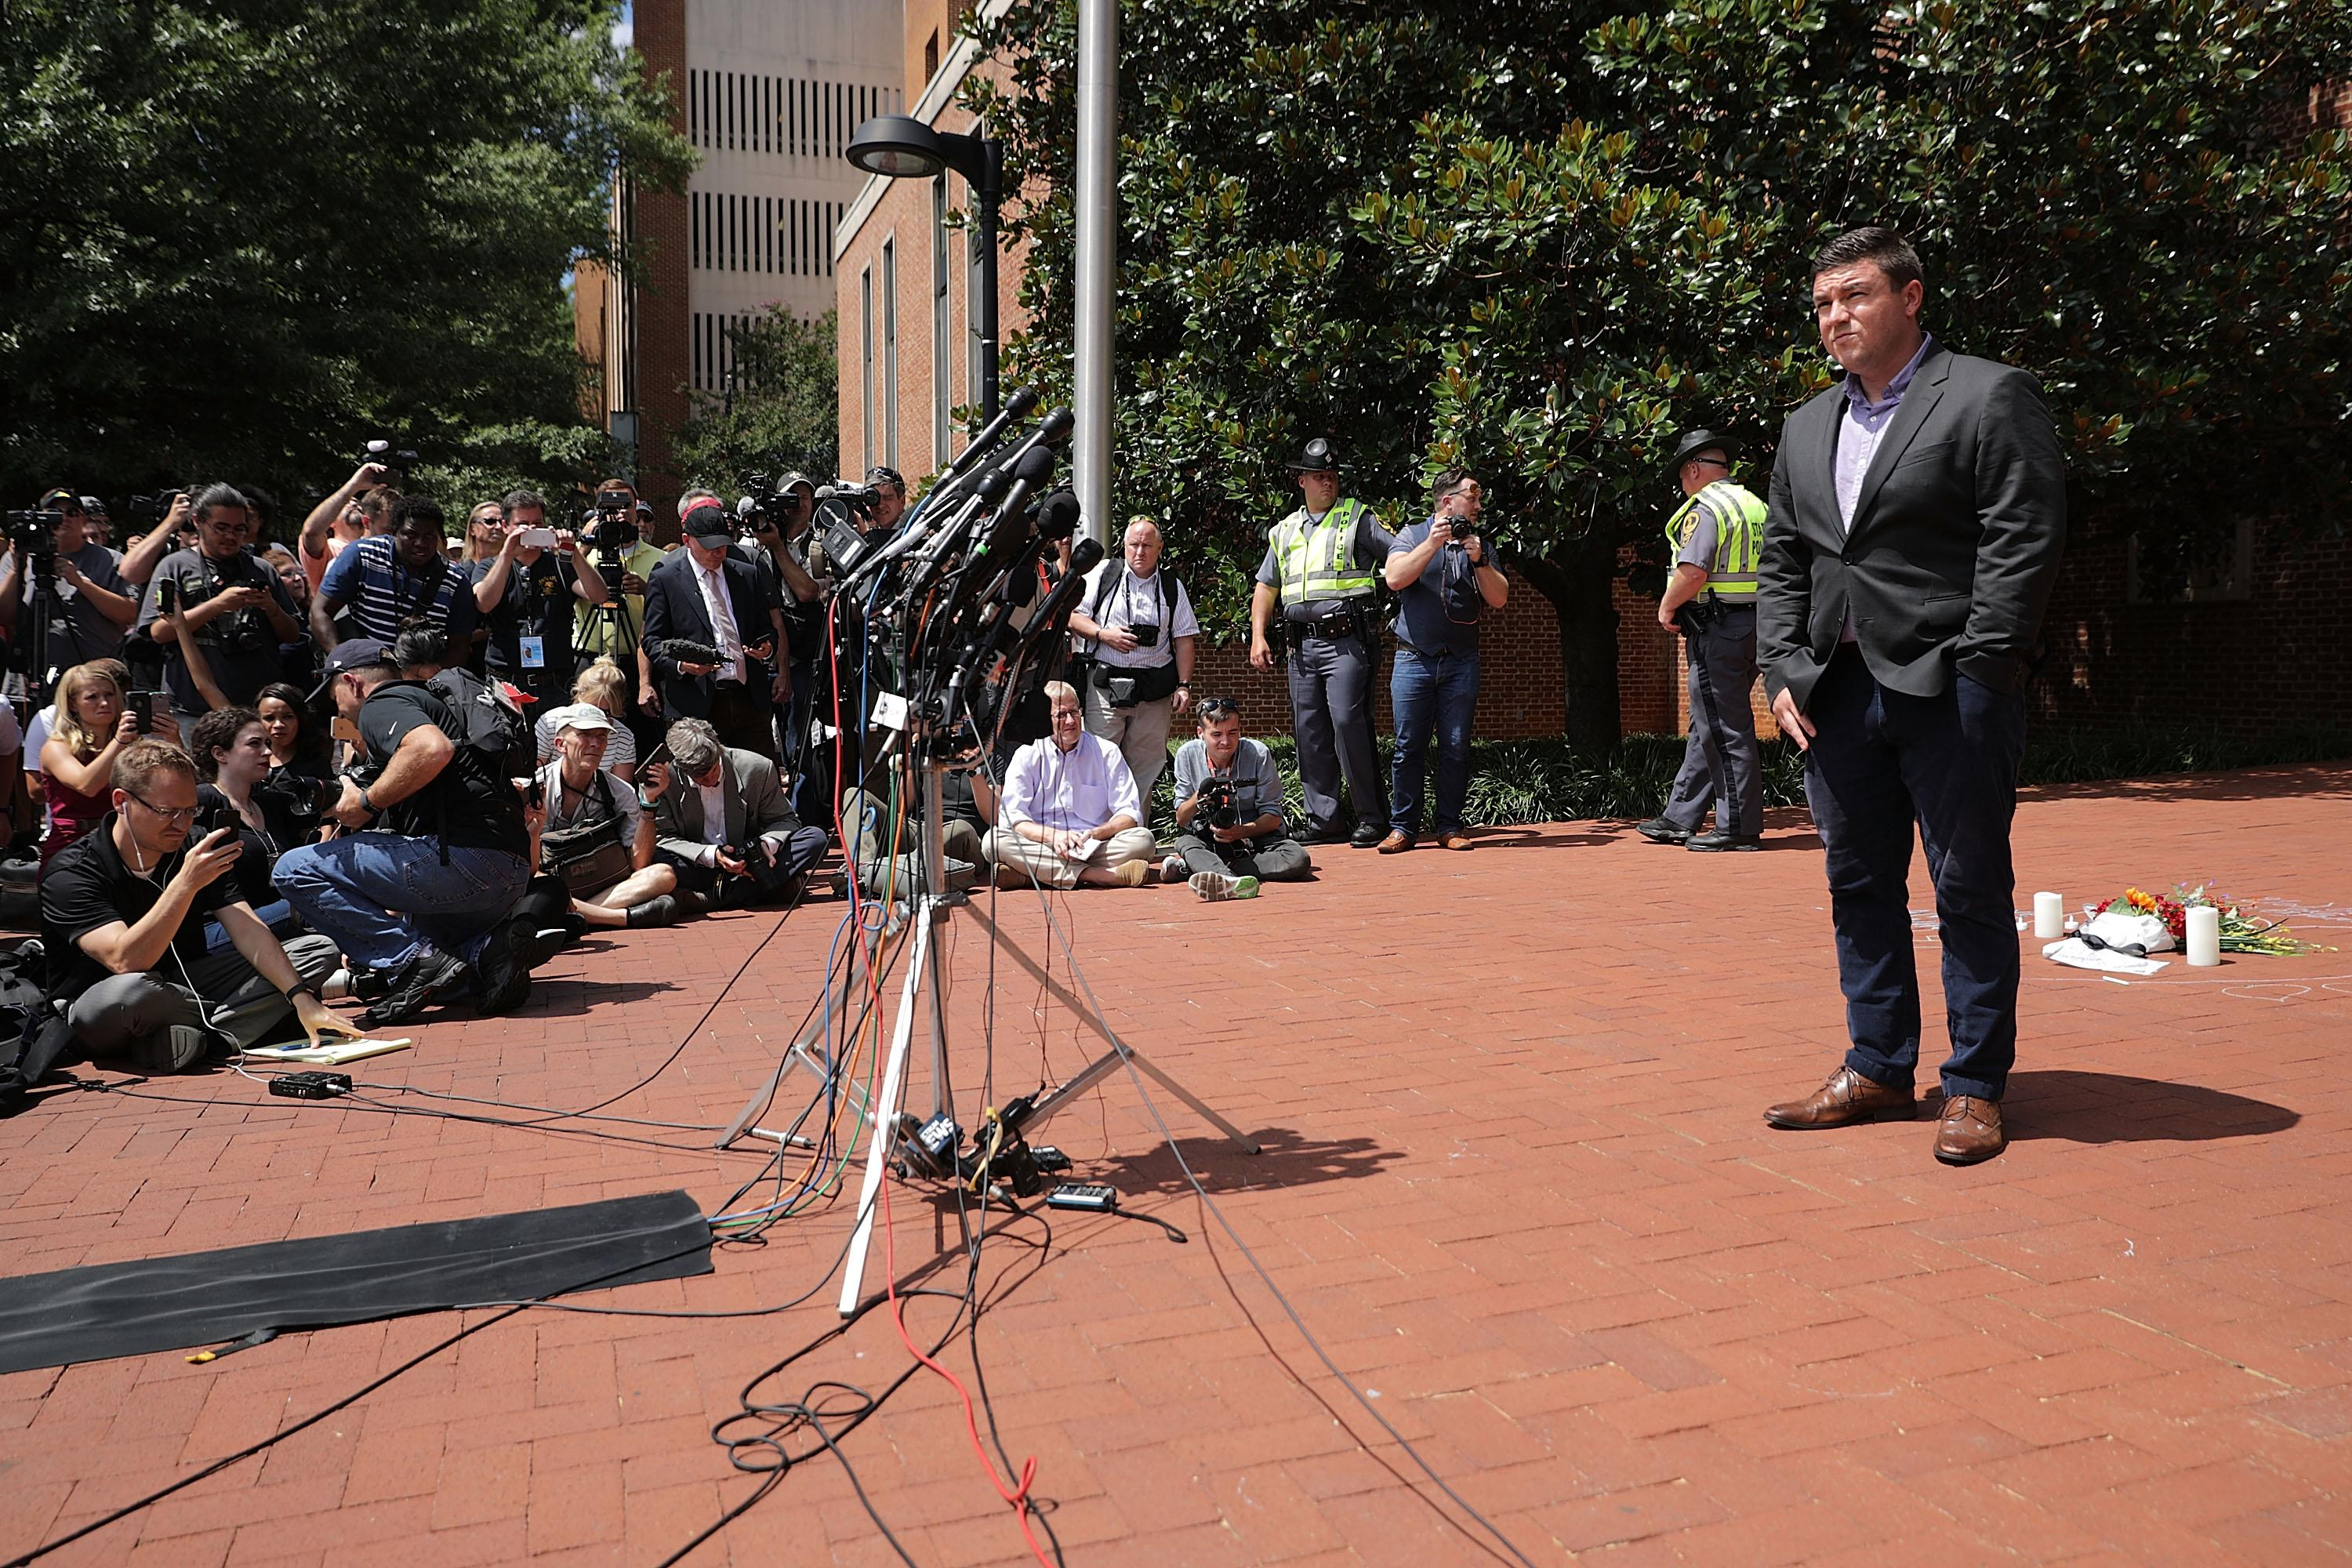 Jason Kessler stands in front of a crowd at a news conference.